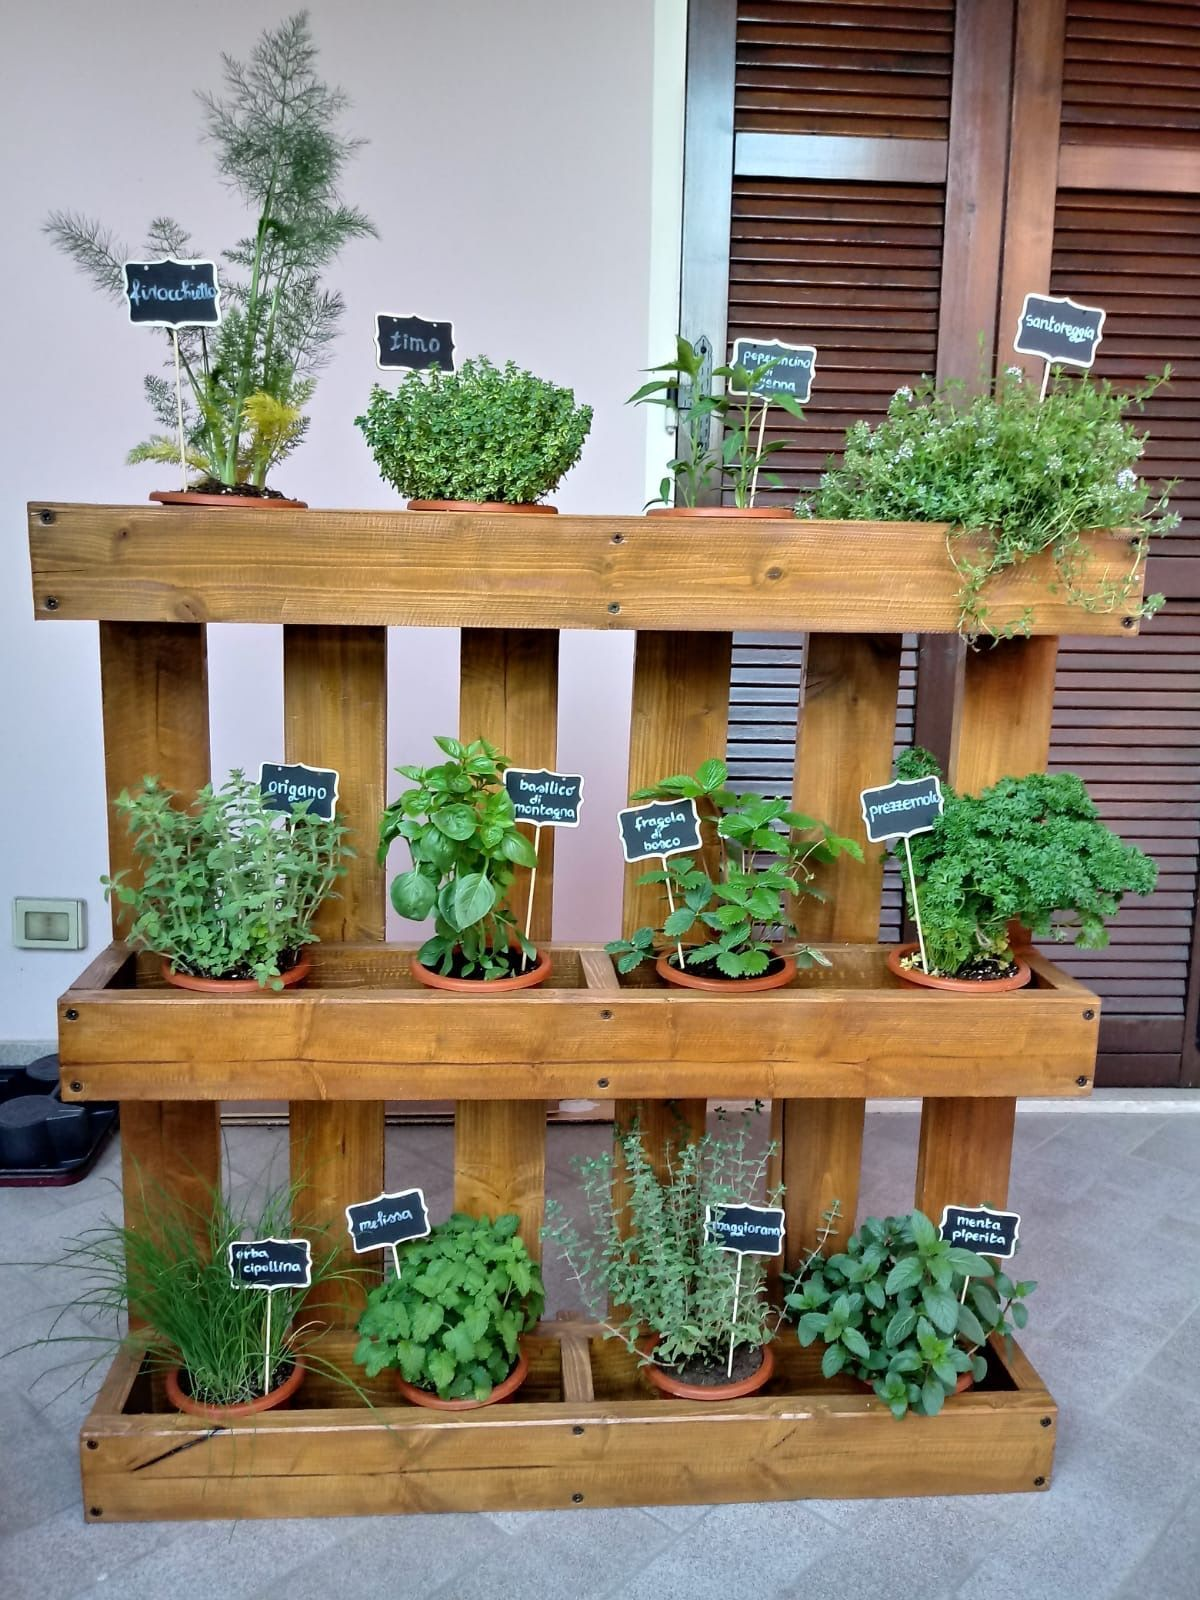 Photo of Pallet garden #apartmentpatiogardens Pallet garden